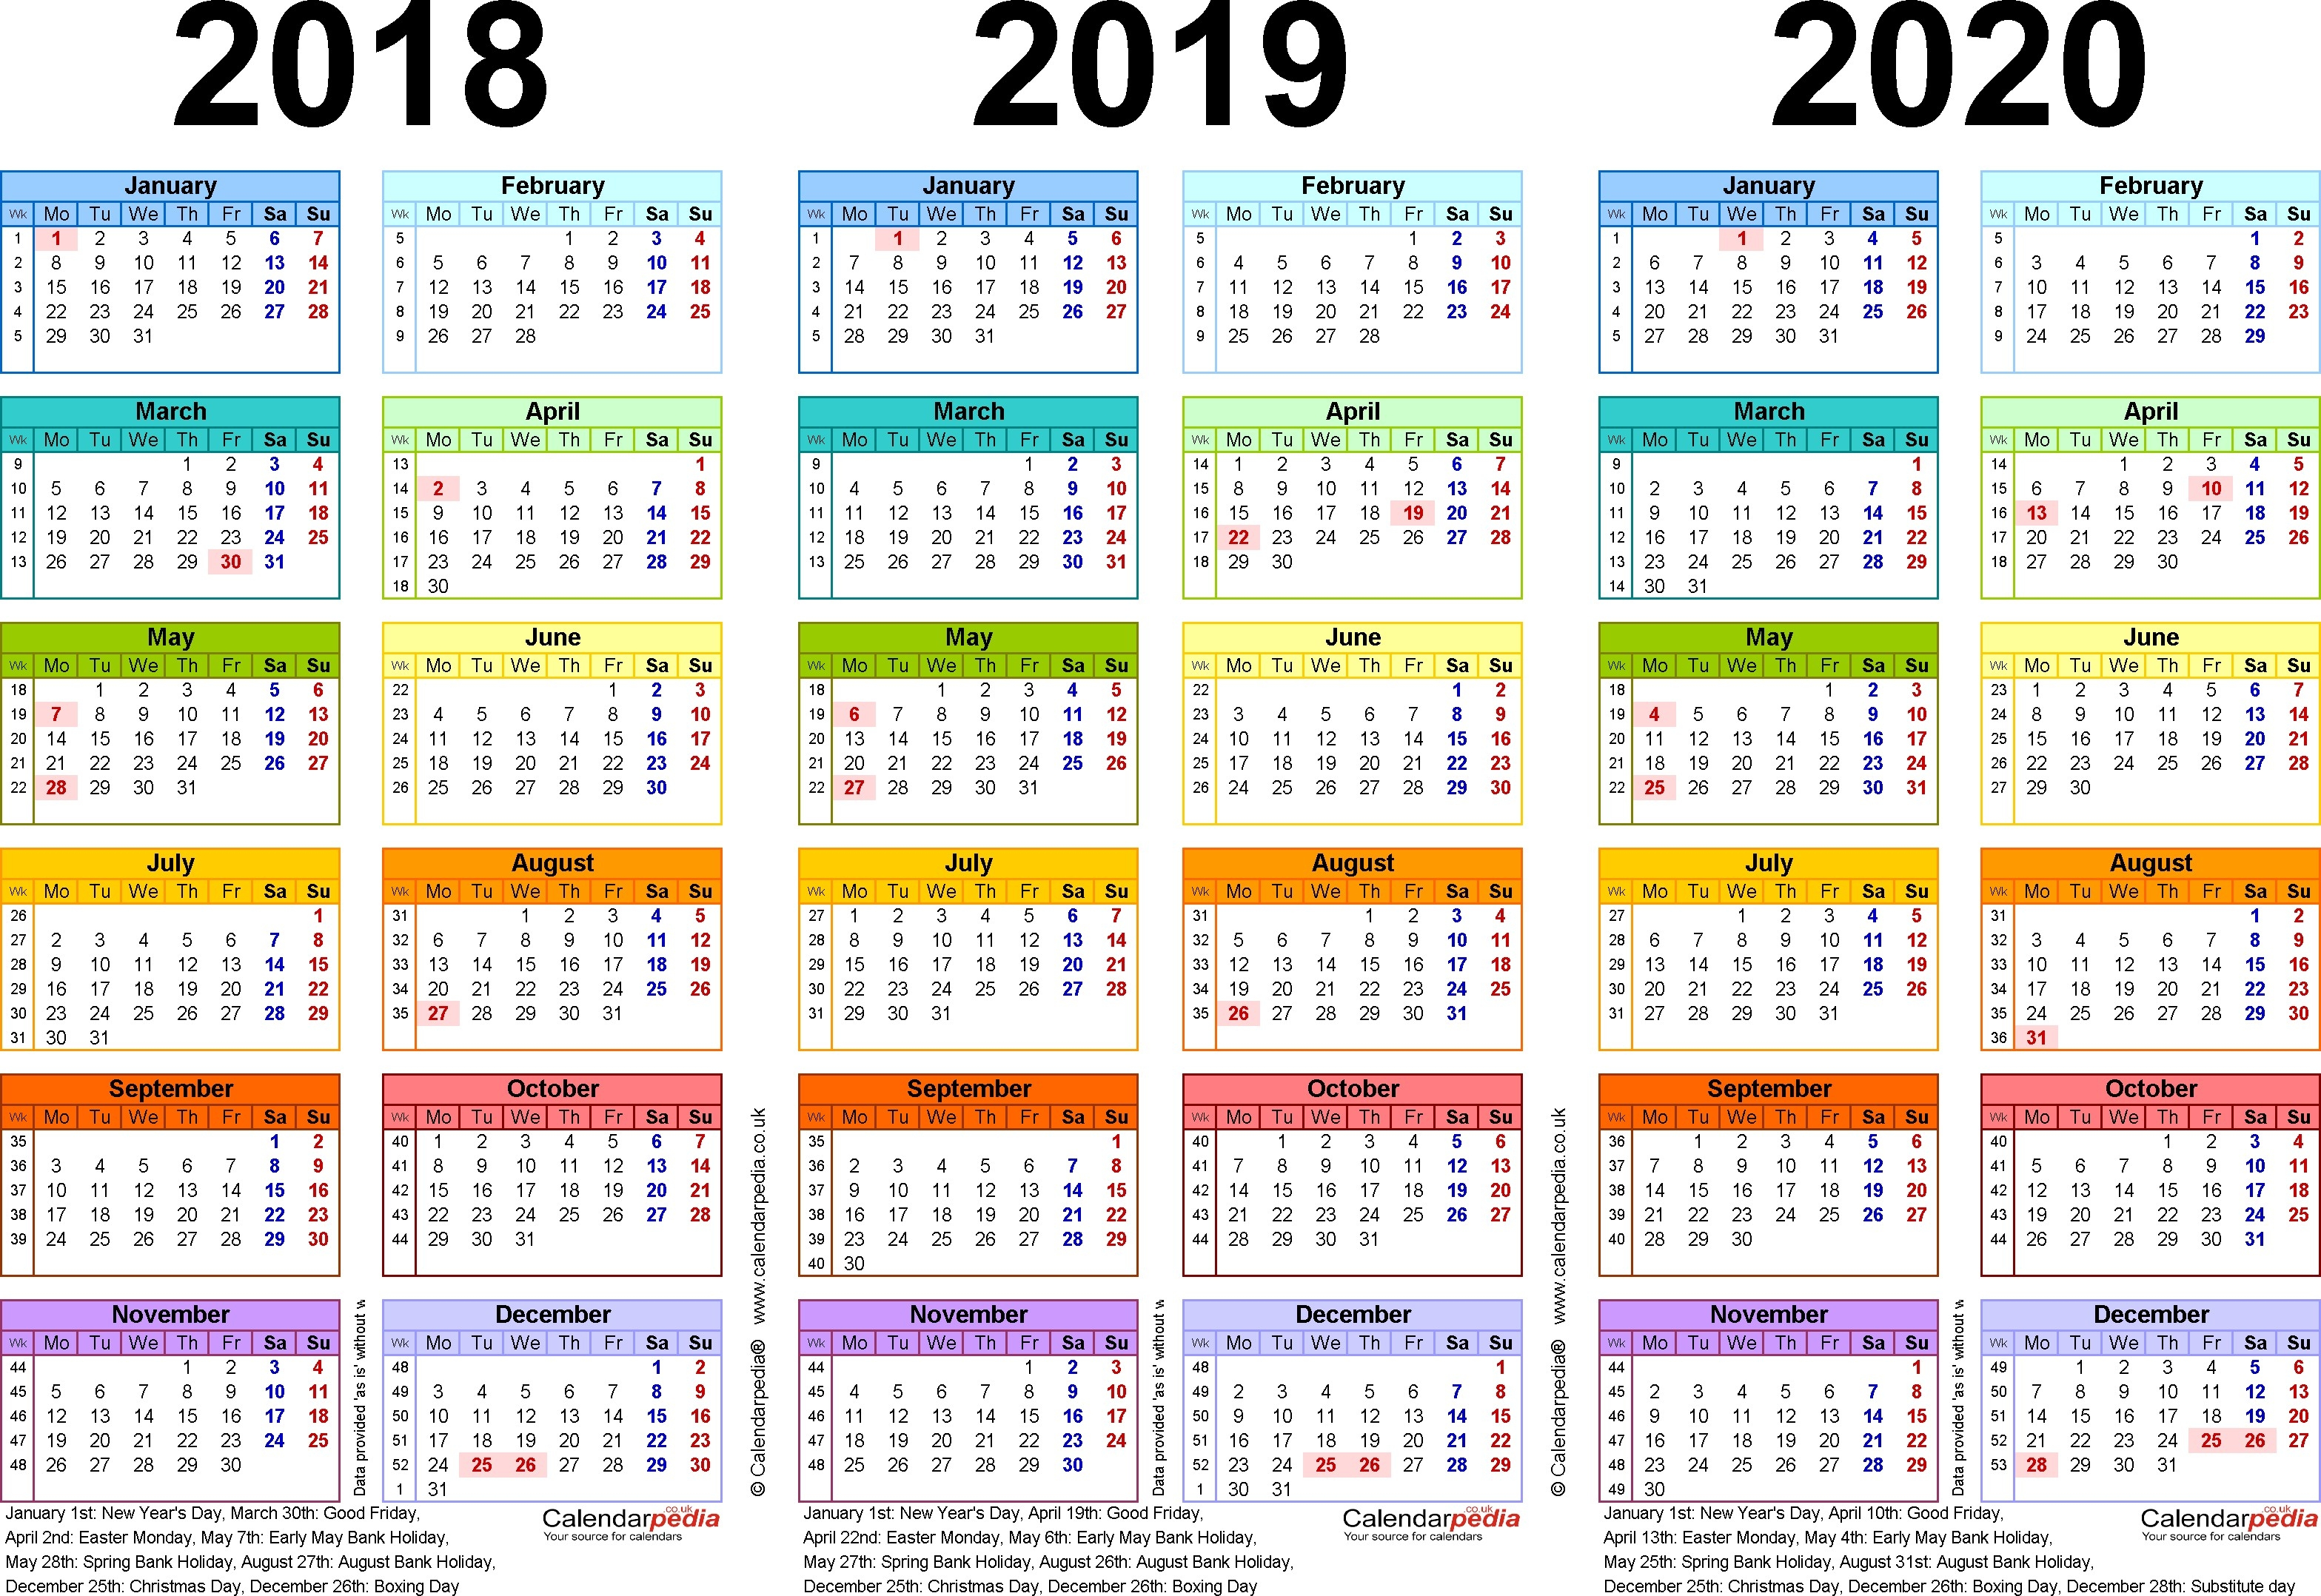 Calendar 2018 And 2020 Printable Three Year Calendars For 2018 2019 2019 Calendar 2020 Printable